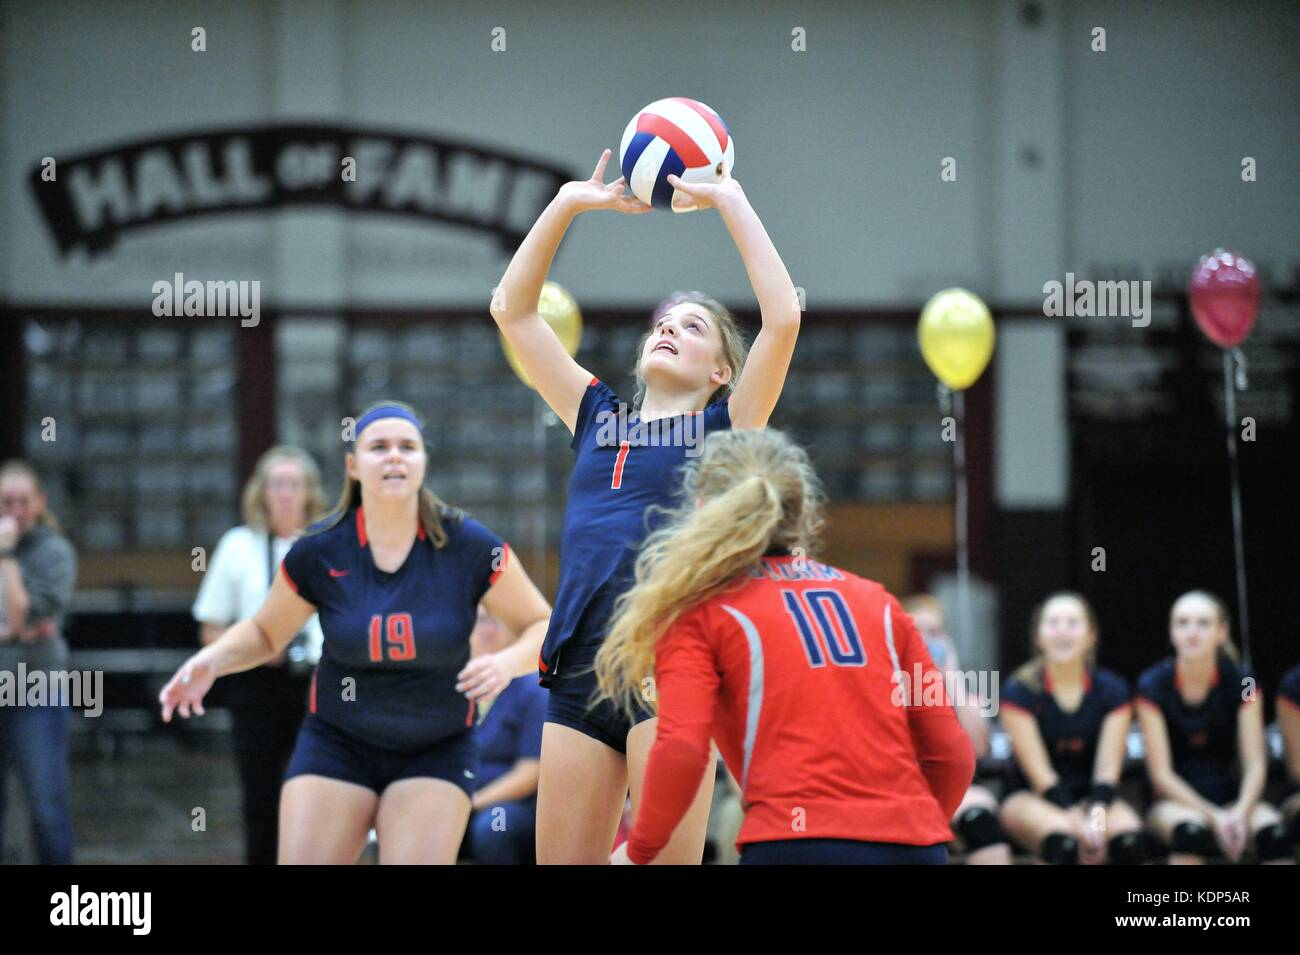 Player setting a shot for a teammate during a high school volleyball match. USA. - Stock Image